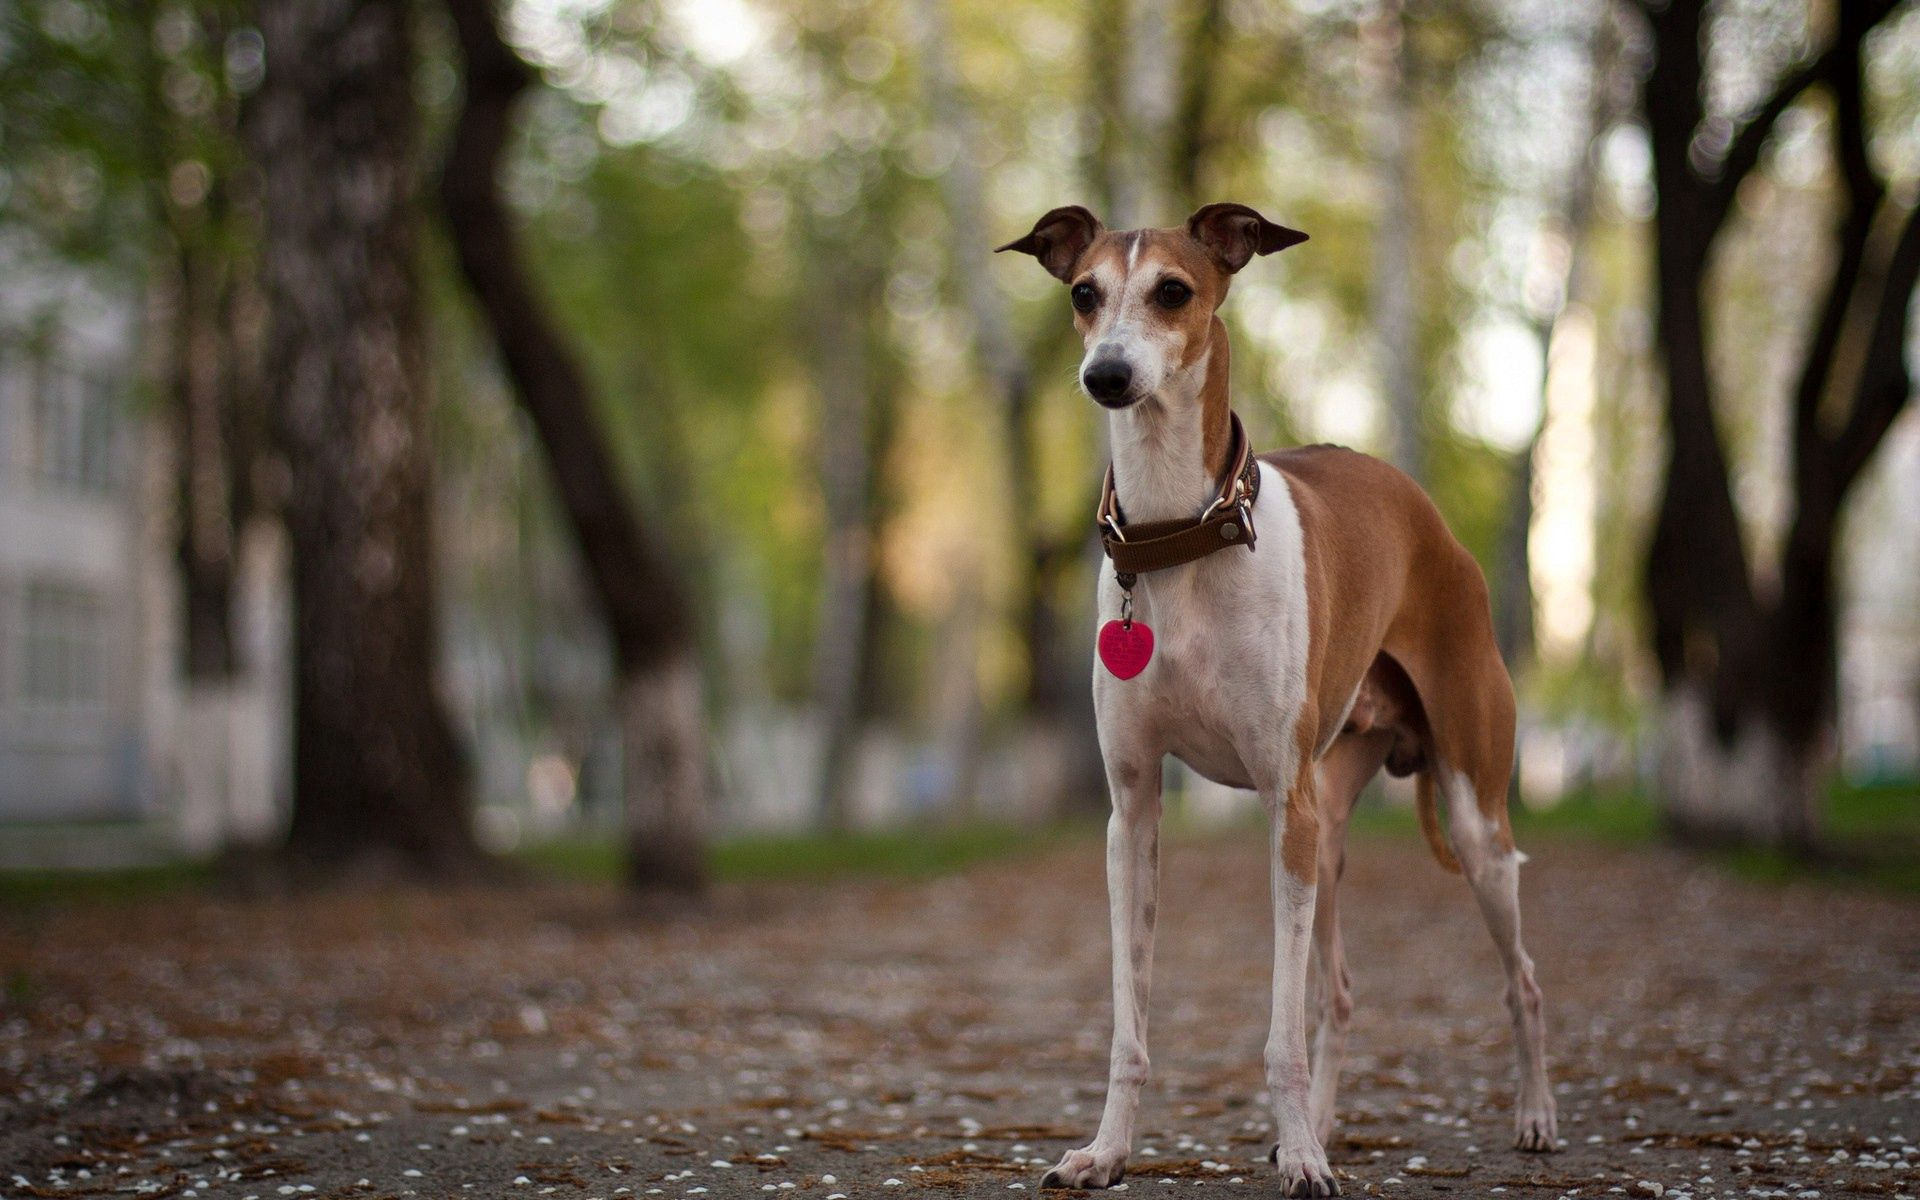 79403 download wallpaper Animals, Dog, Forest, Stroll, Collar, Hunting, Hunt, Color screensavers and pictures for free